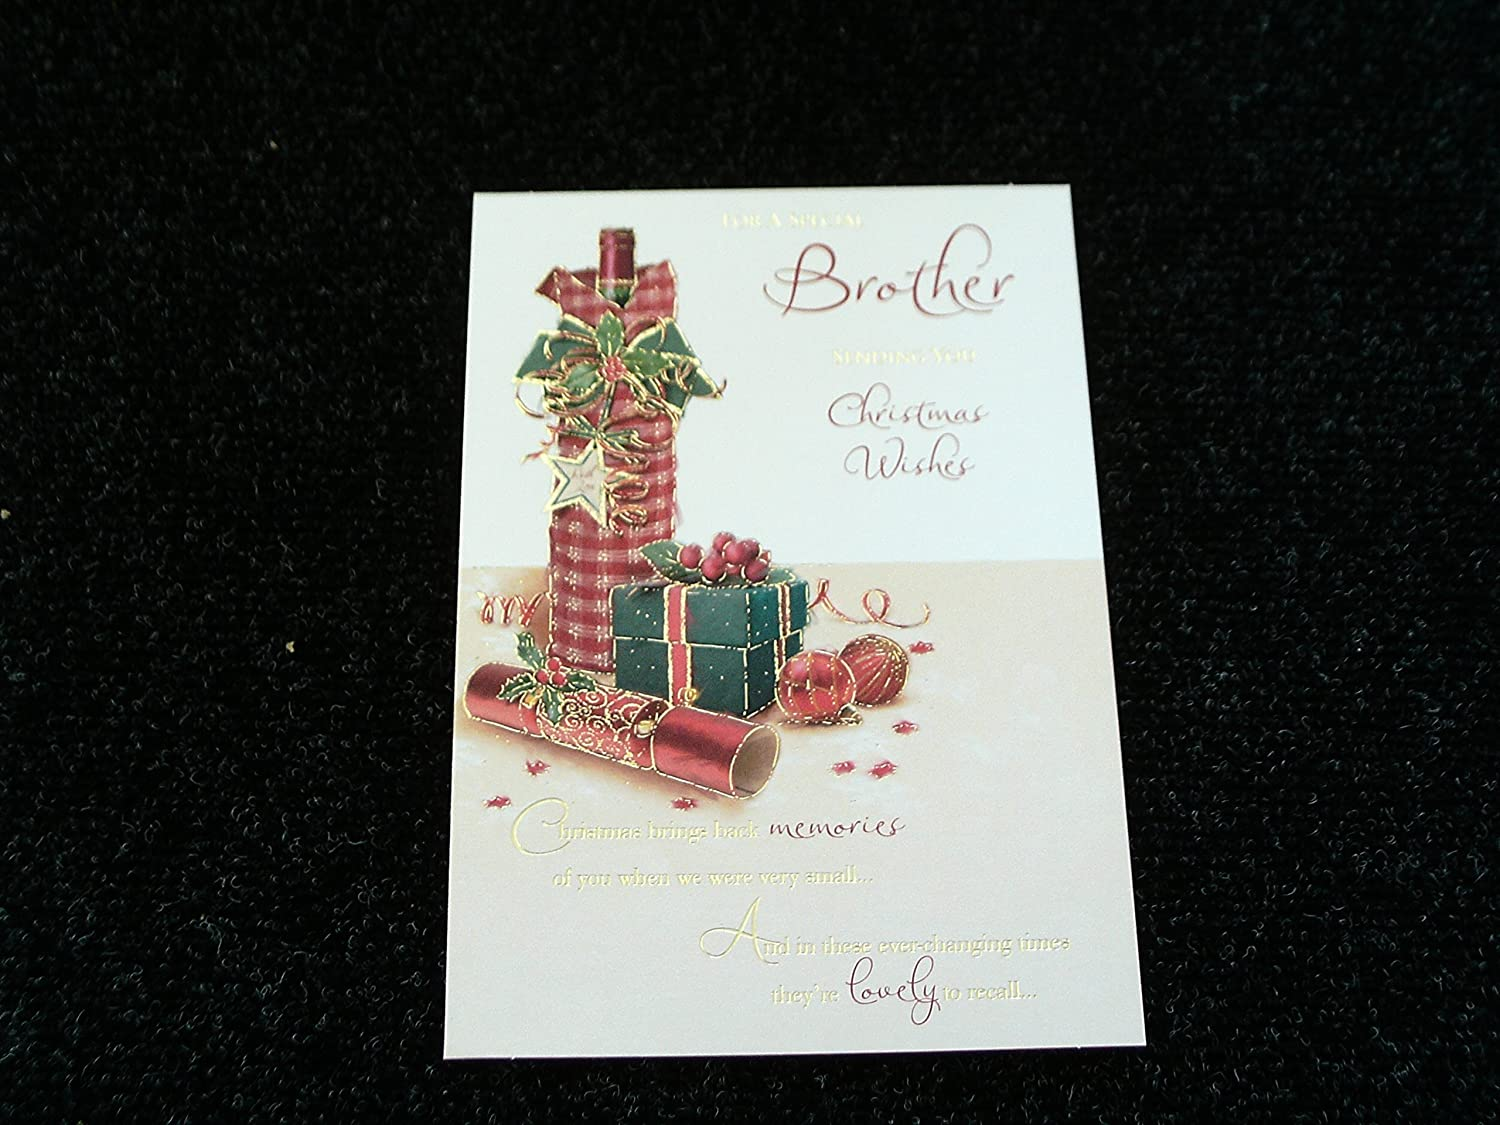 Nice verse quality gold foil lots of love christmas greeting card nice verse quality gold foil lots of love christmas greeting card brother amazon kitchen home kristyandbryce Image collections